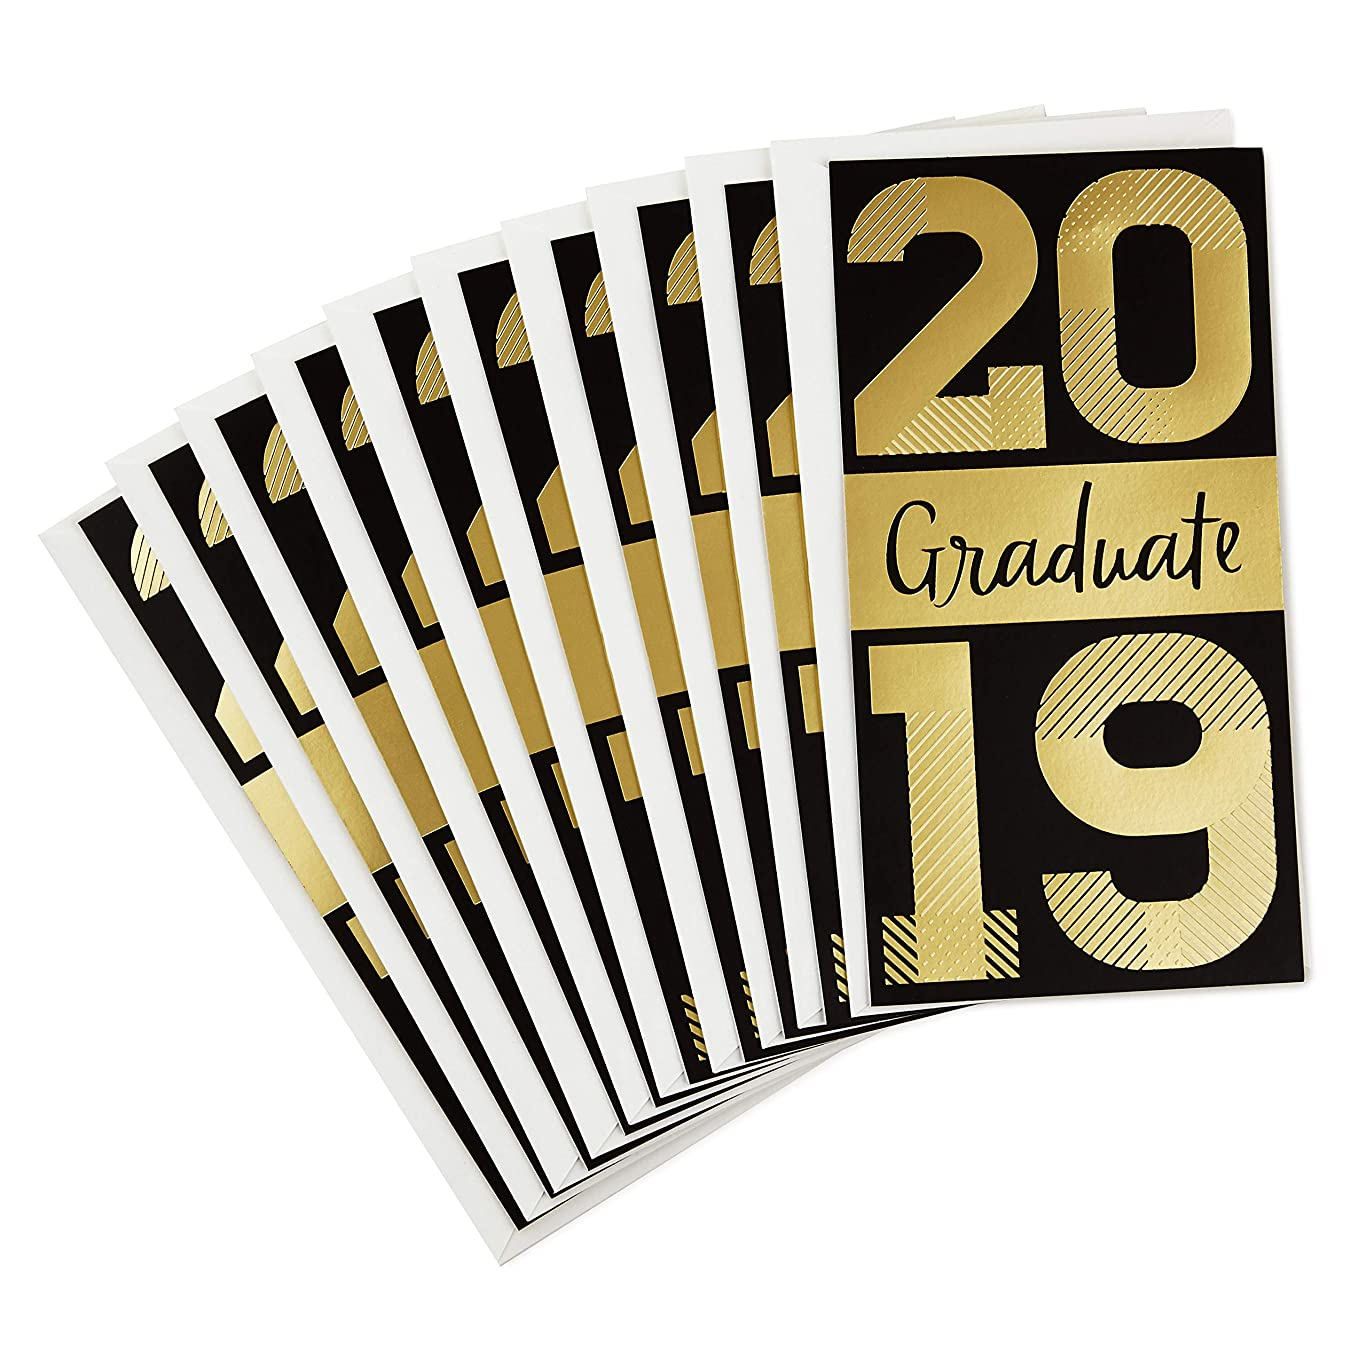 Hallmark 2019 Pack of Graduation Cards Money Holders or Gift Card Holders, It's Your Moment (10 Cards with Envelopes)